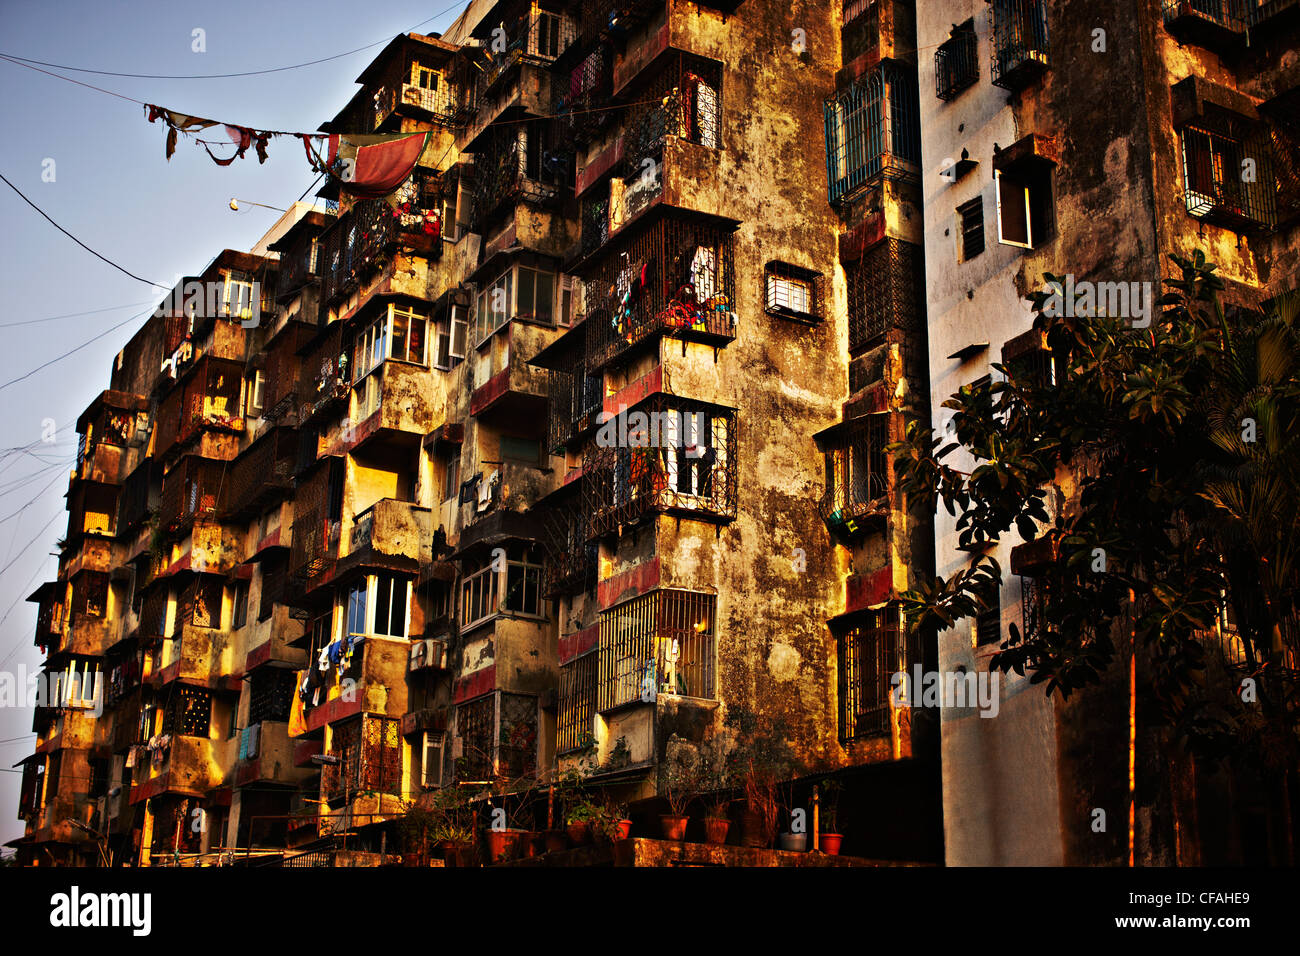 Clothes hanging from dirty apartments - Stock Image